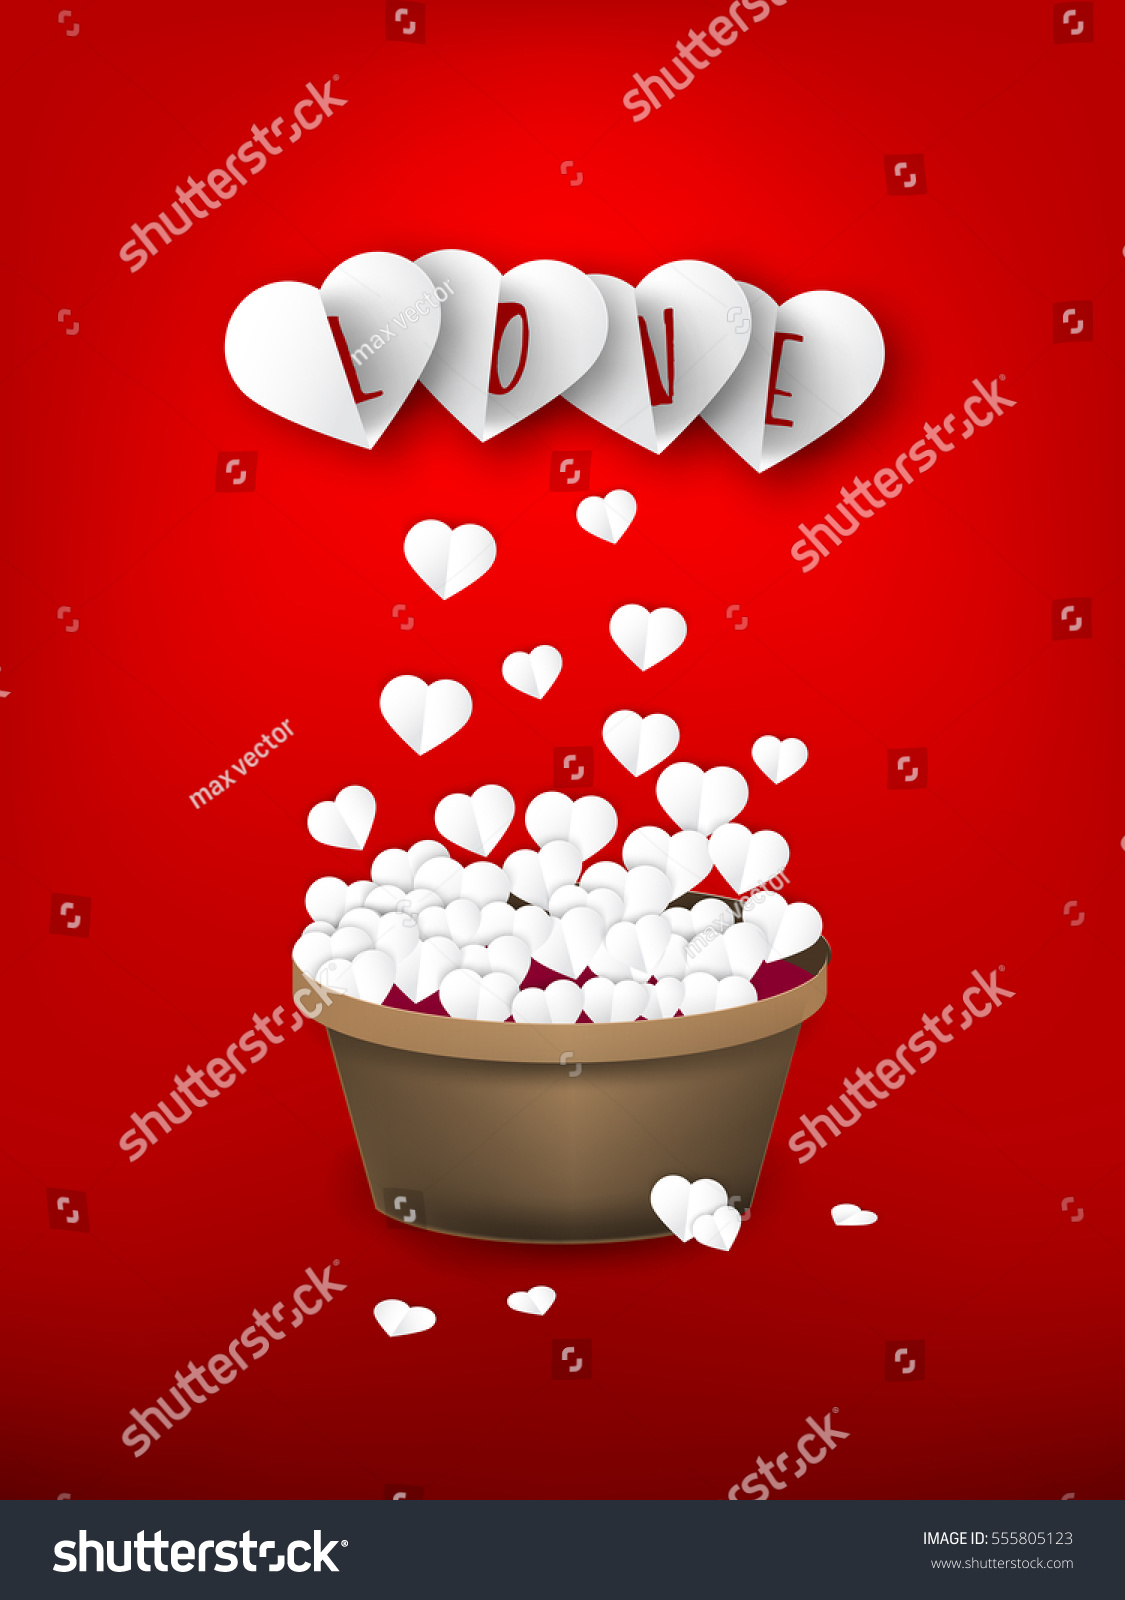 Cut Paper Heart Fly Bin Happy Stock Vector Royalty Free 555805123